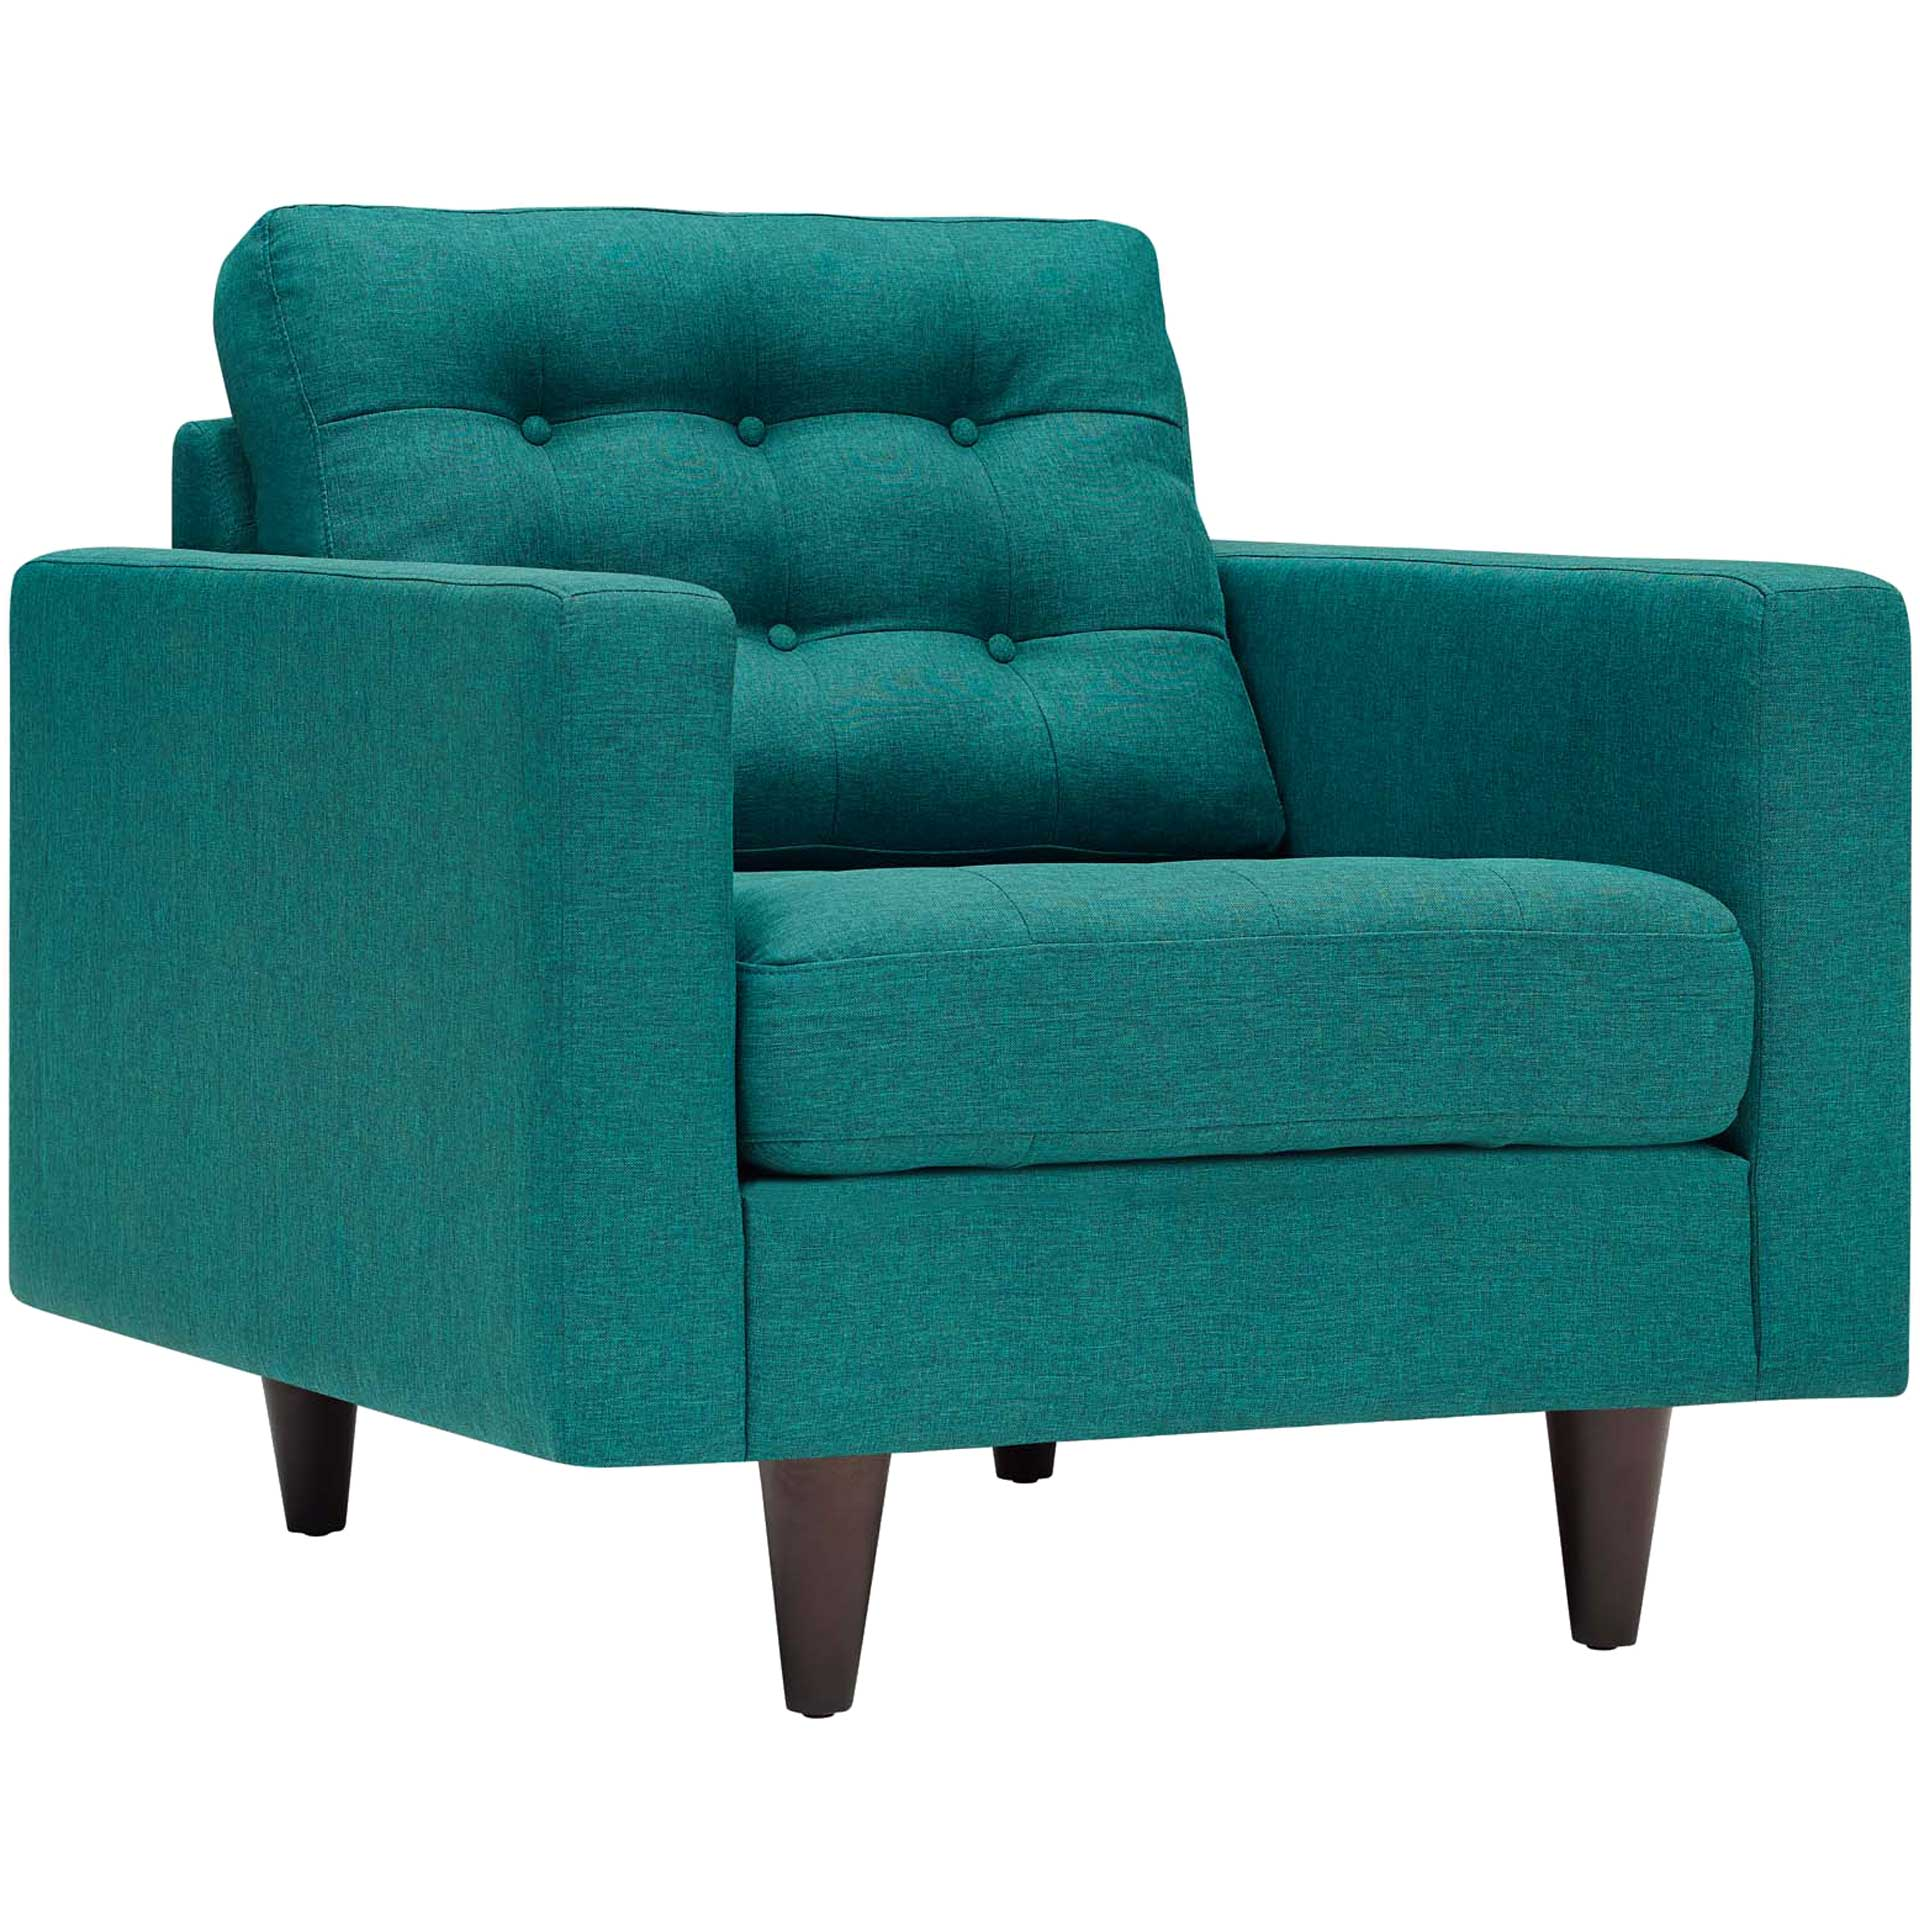 Era Upholstered Armchair Teal